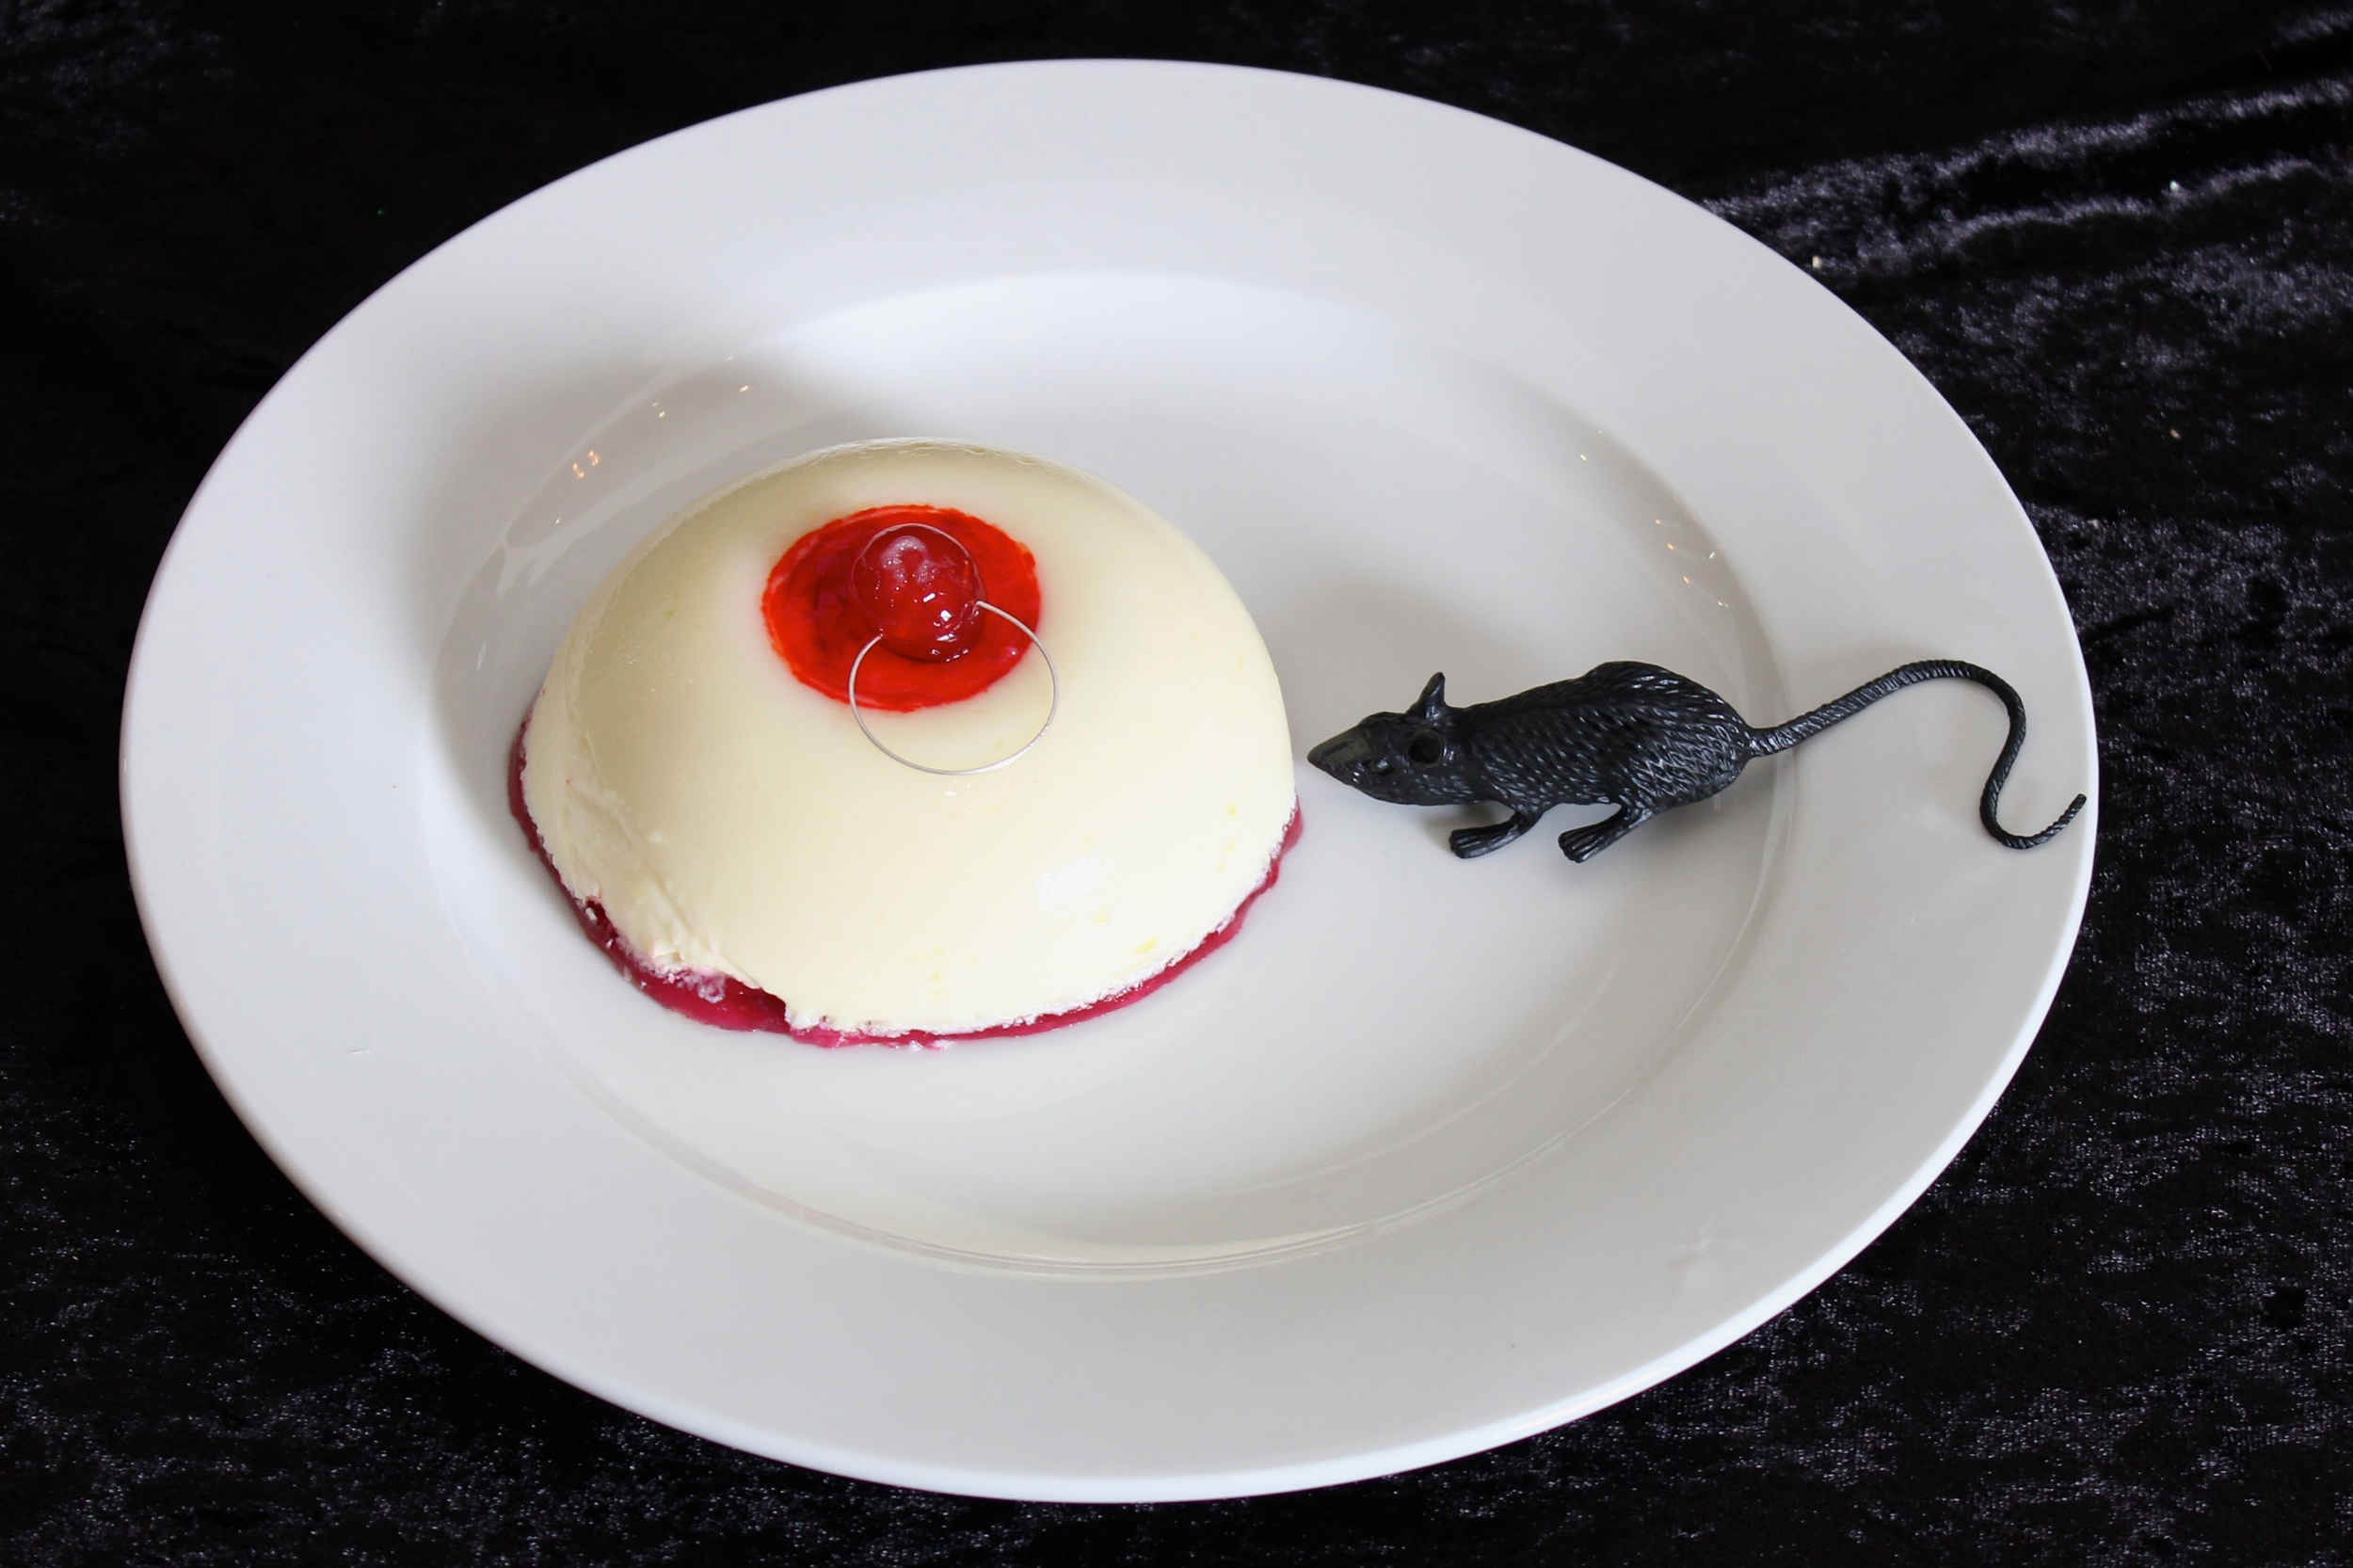 Gothic Dinner Party - Rosewater Panna Cotta